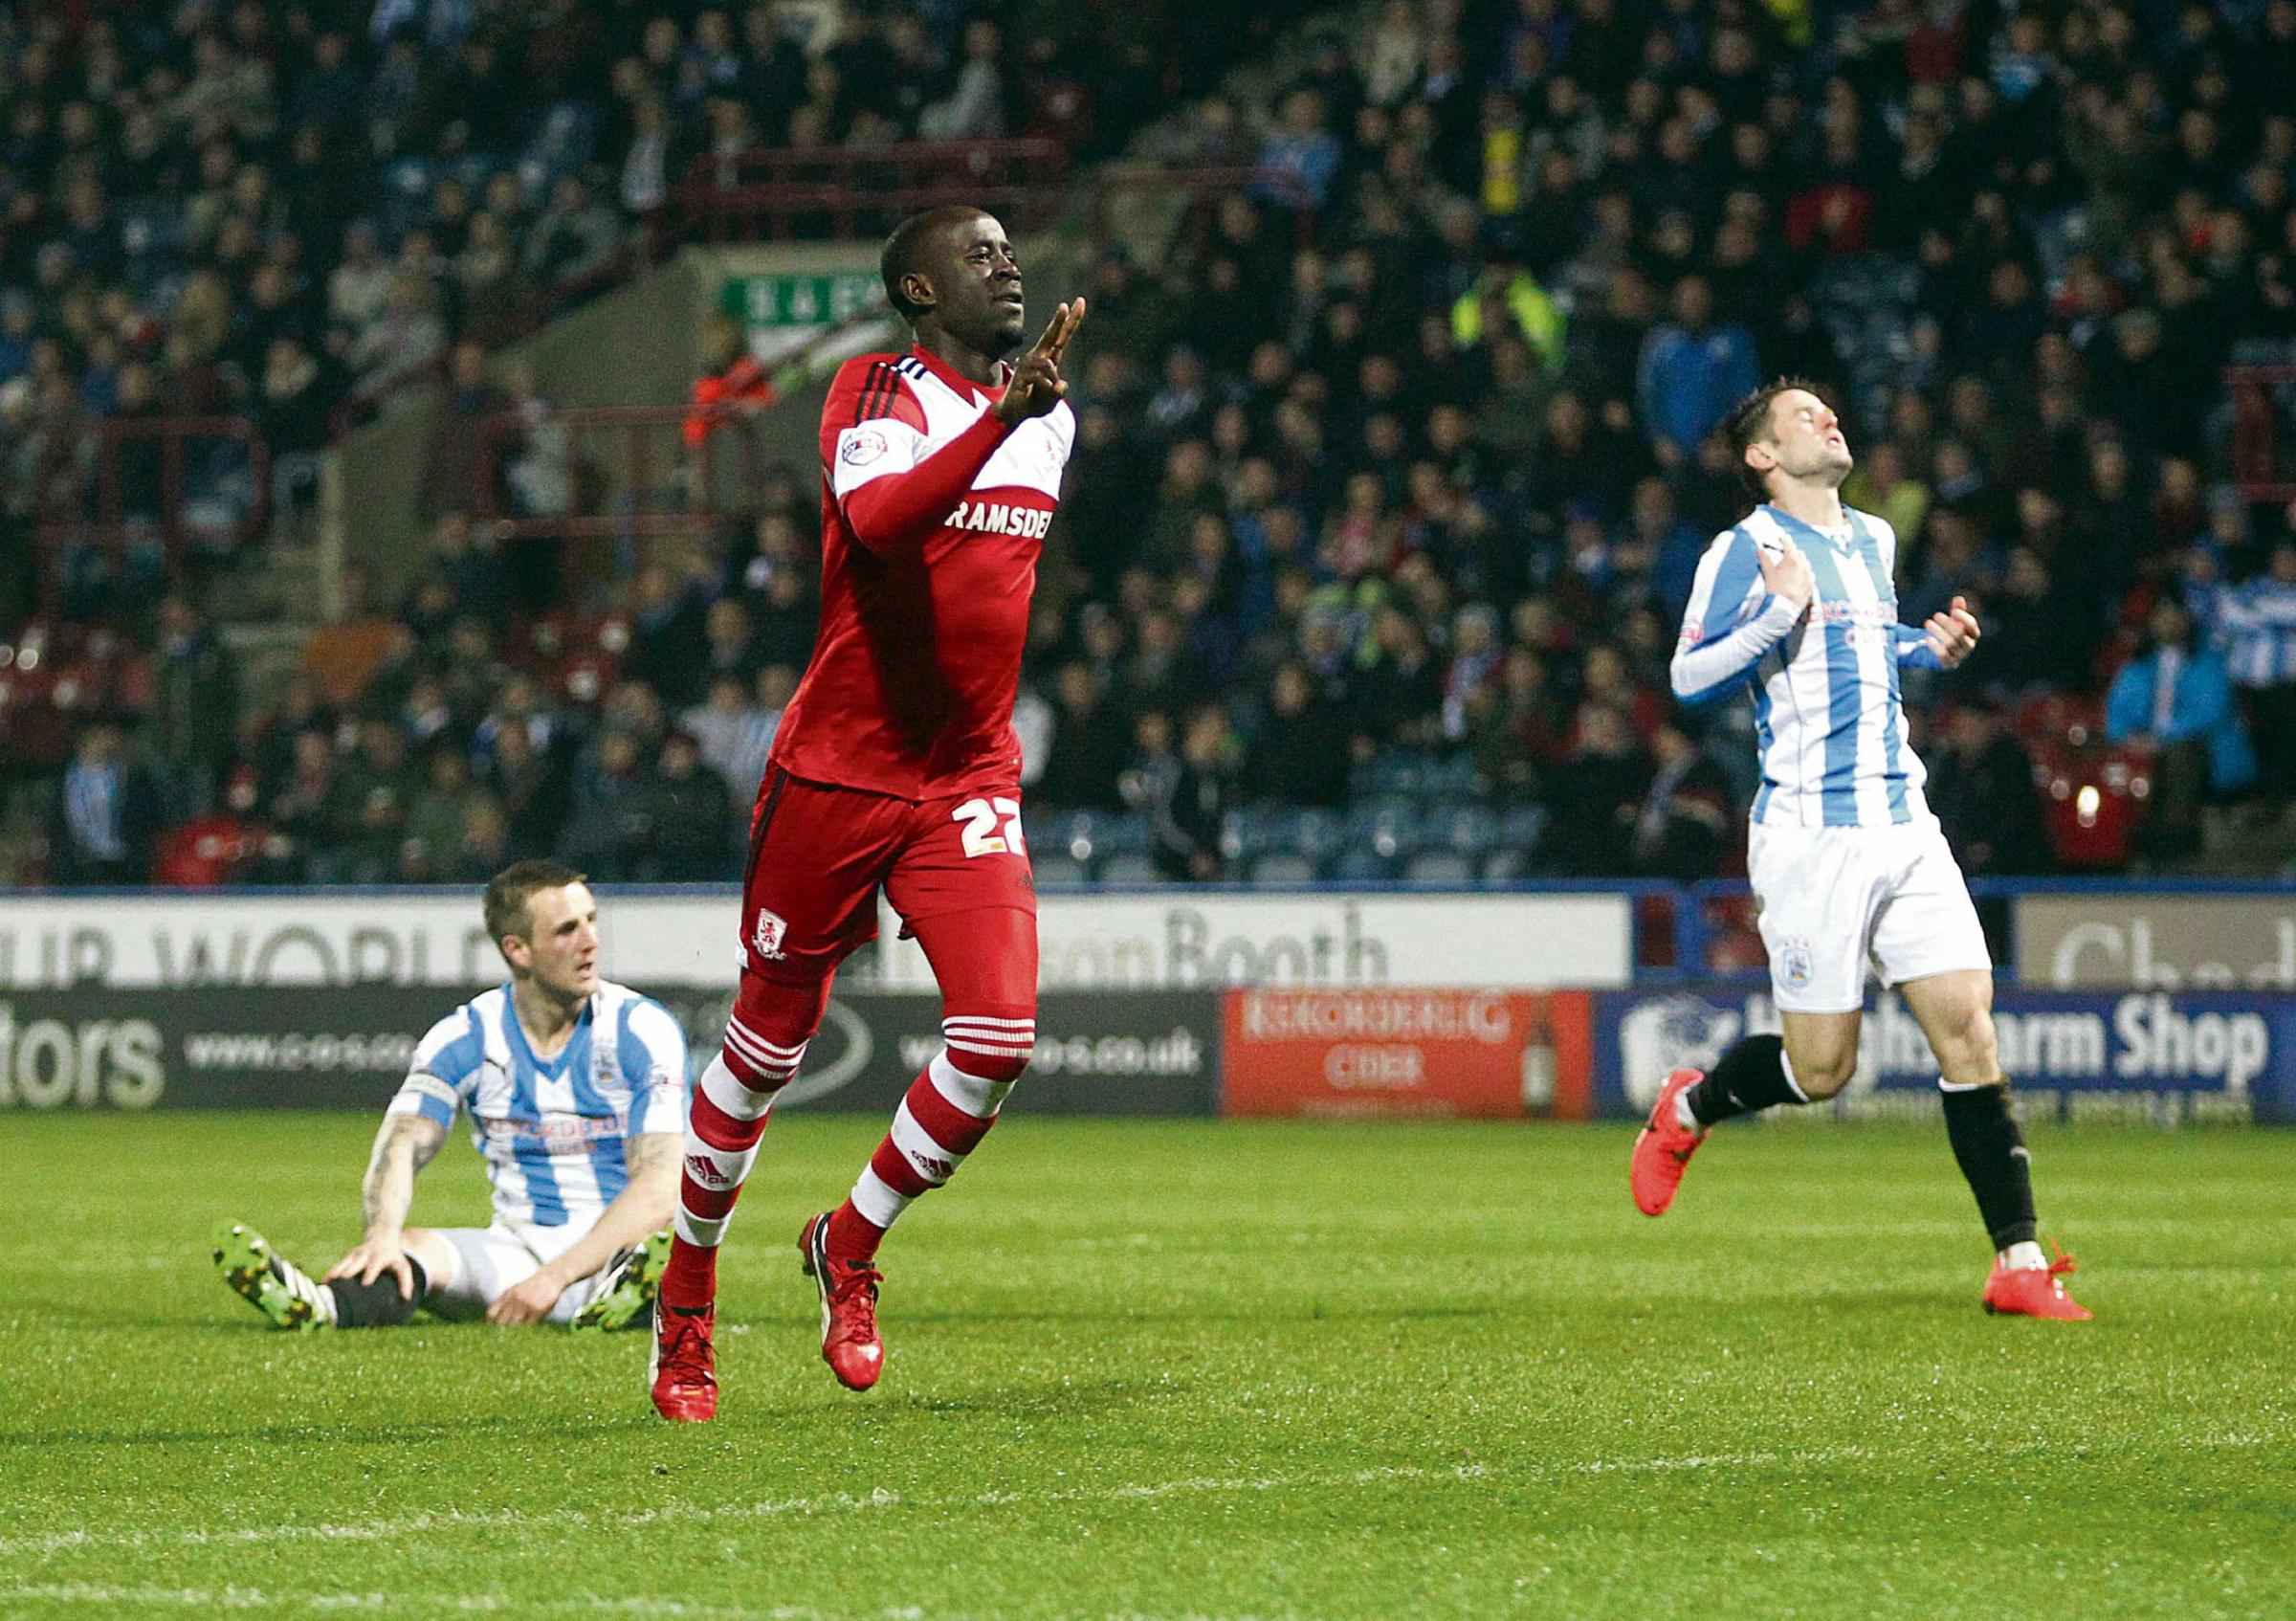 Storm: Middlesbrough's Albert Adomah scored at Huddersfield on his way to grabbing 12 goals